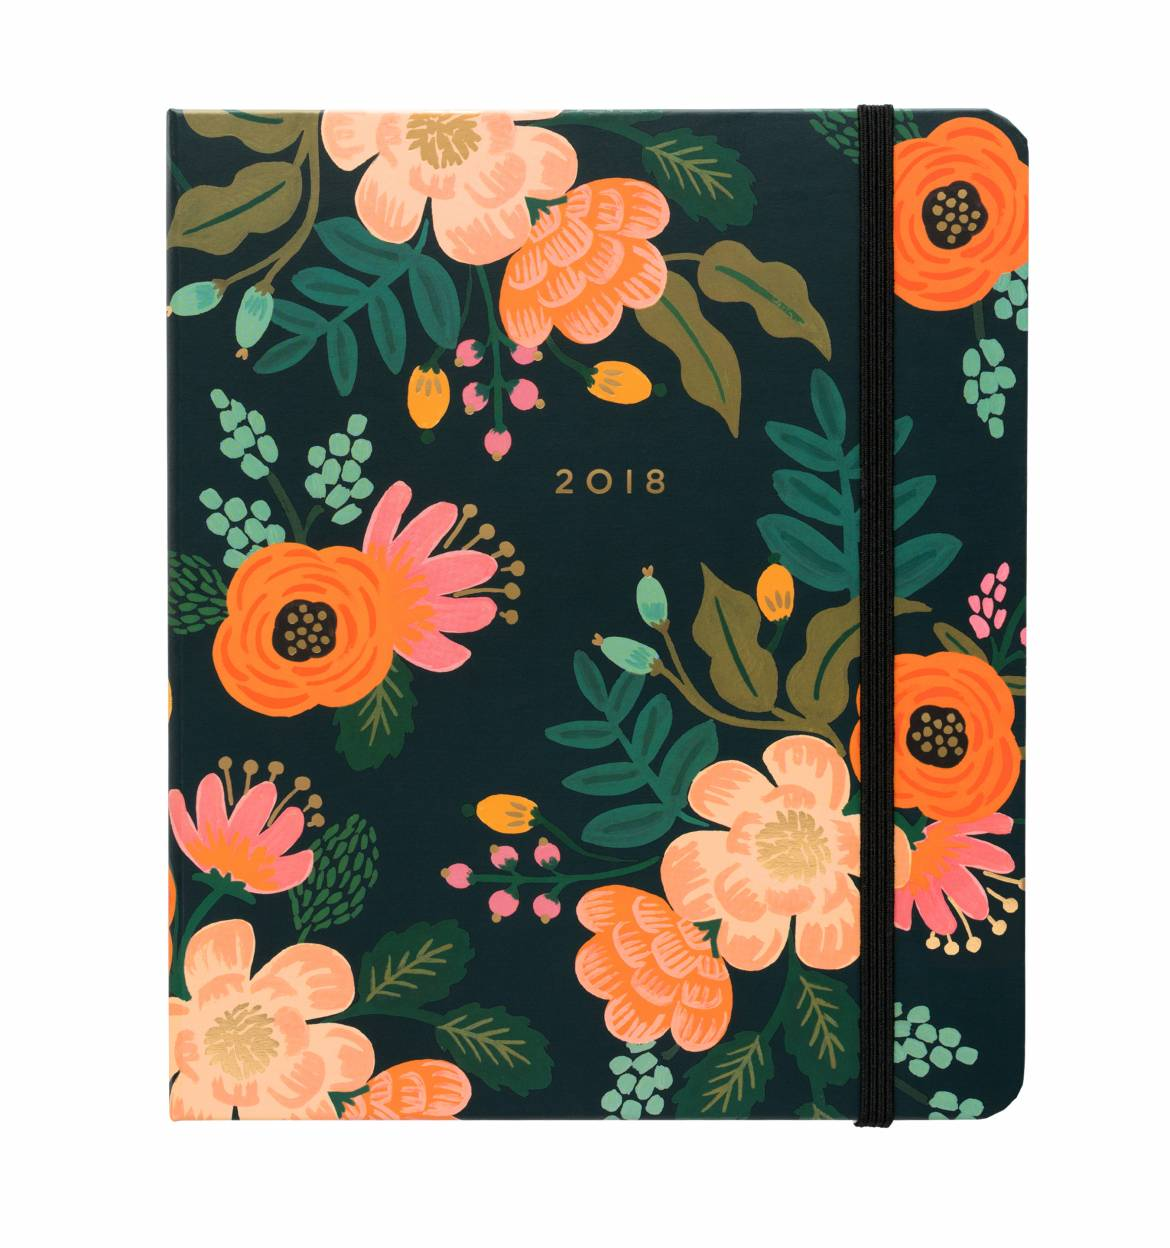 American Made Planners from Rifle Paper Co